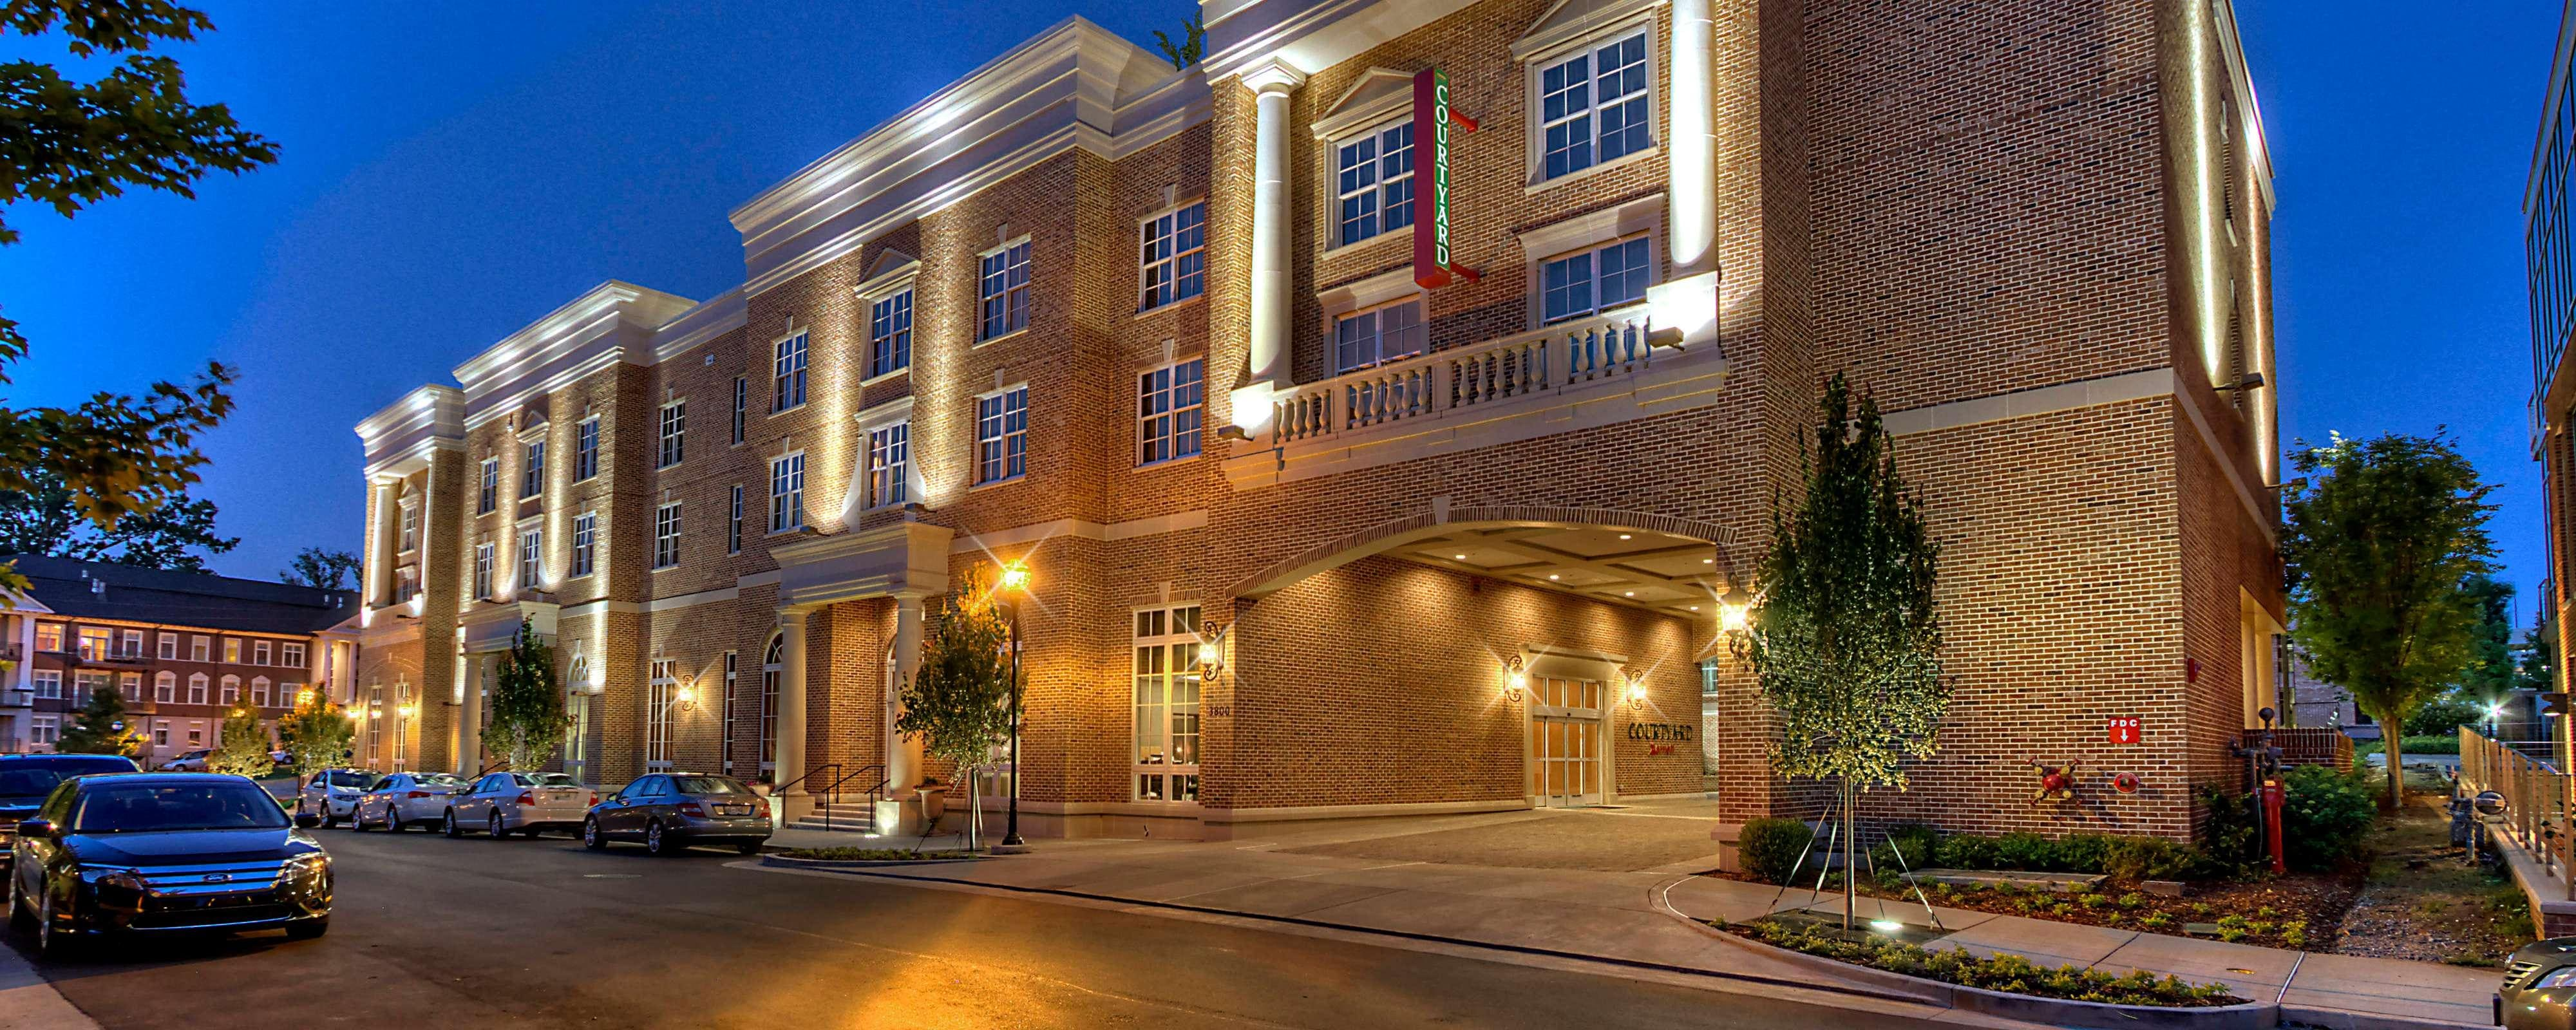 Green Hills Tennessee Hotels